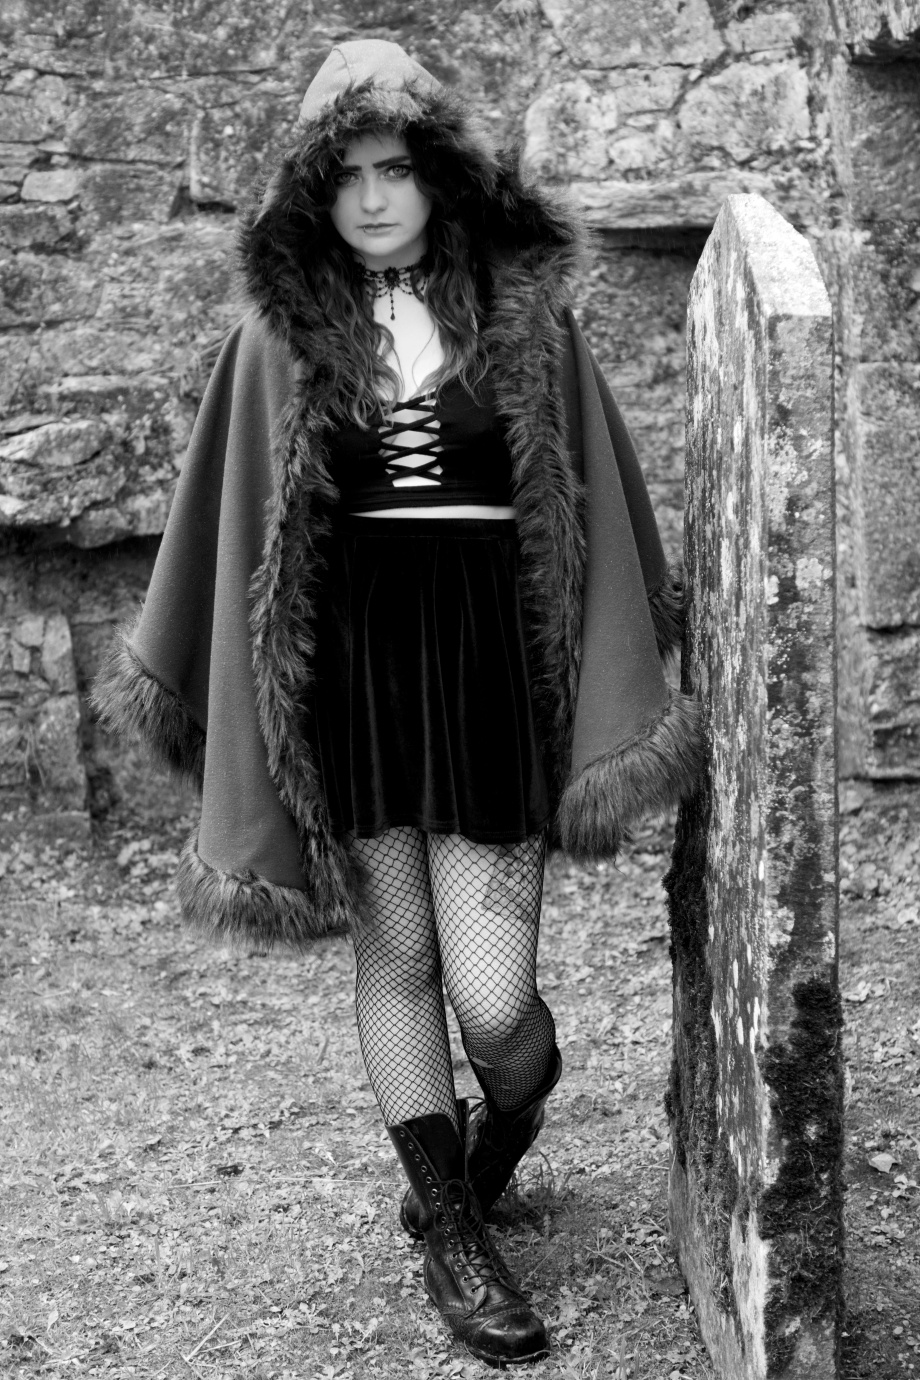 alternative, glamour, cork, kilcrea, abbey, black and white, gothic, eyes, samhain, silent movie